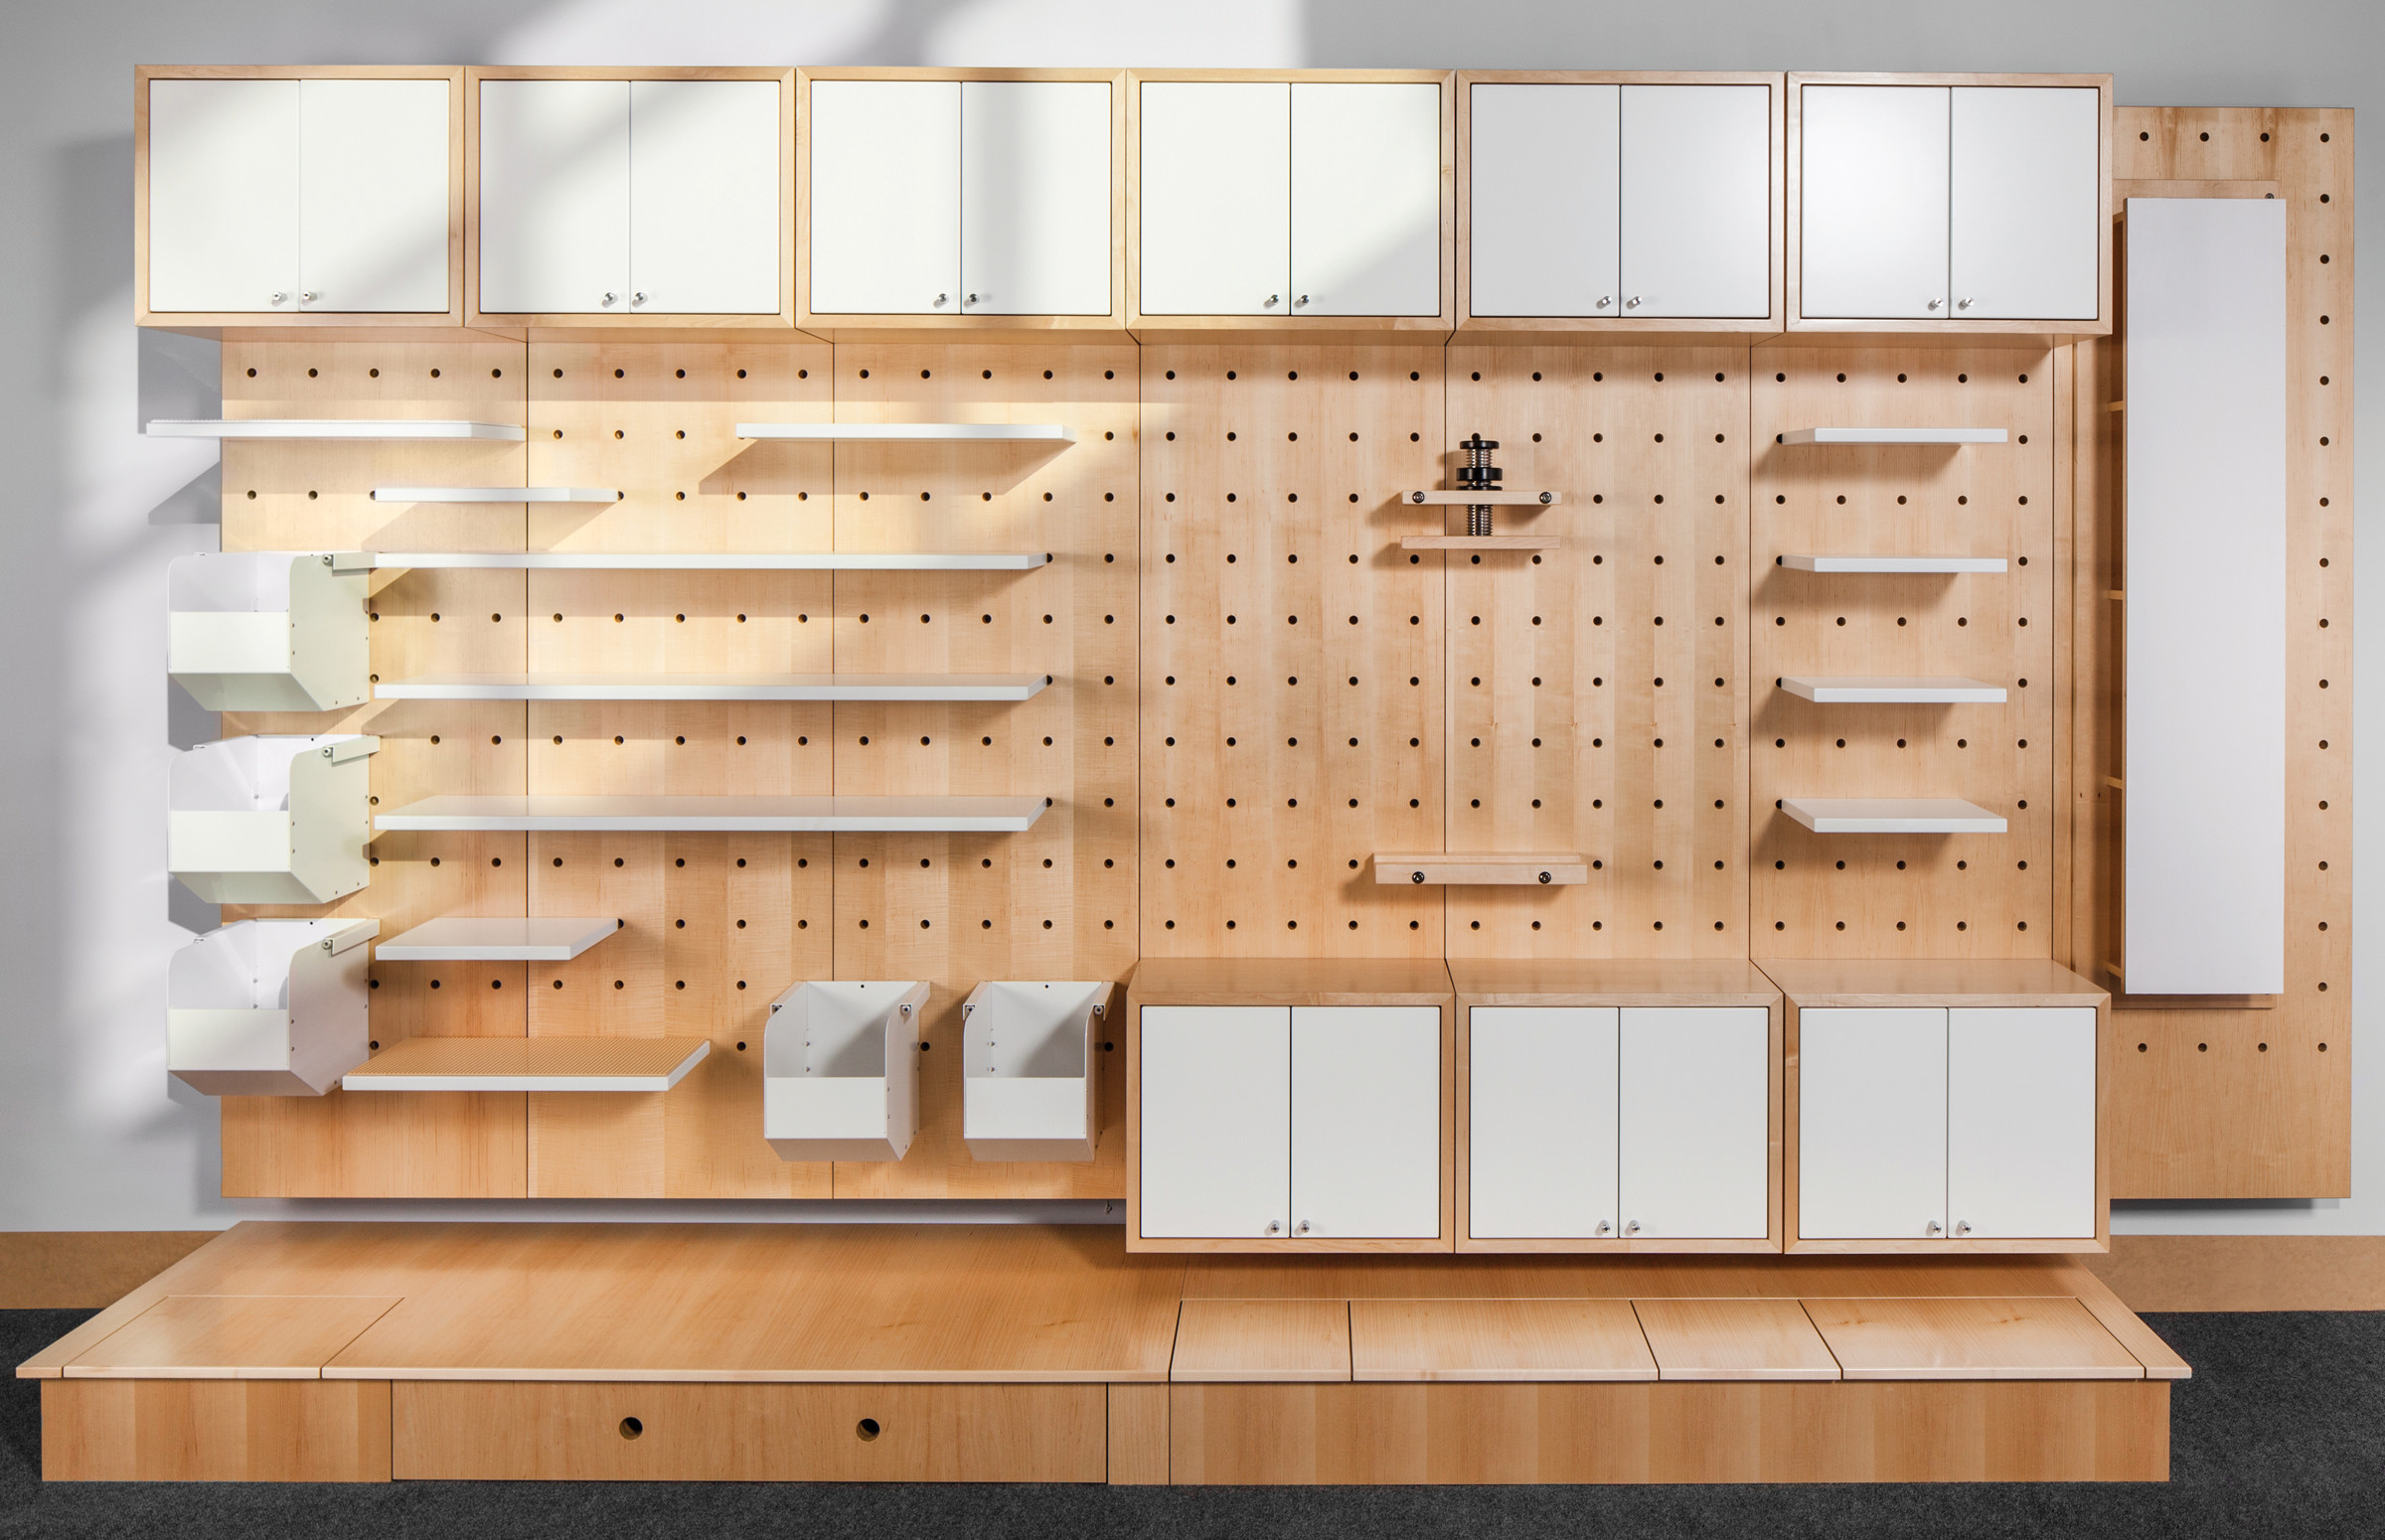 pegboard-pegwall-mywall-kids-storage-play-thinkterior.jpg